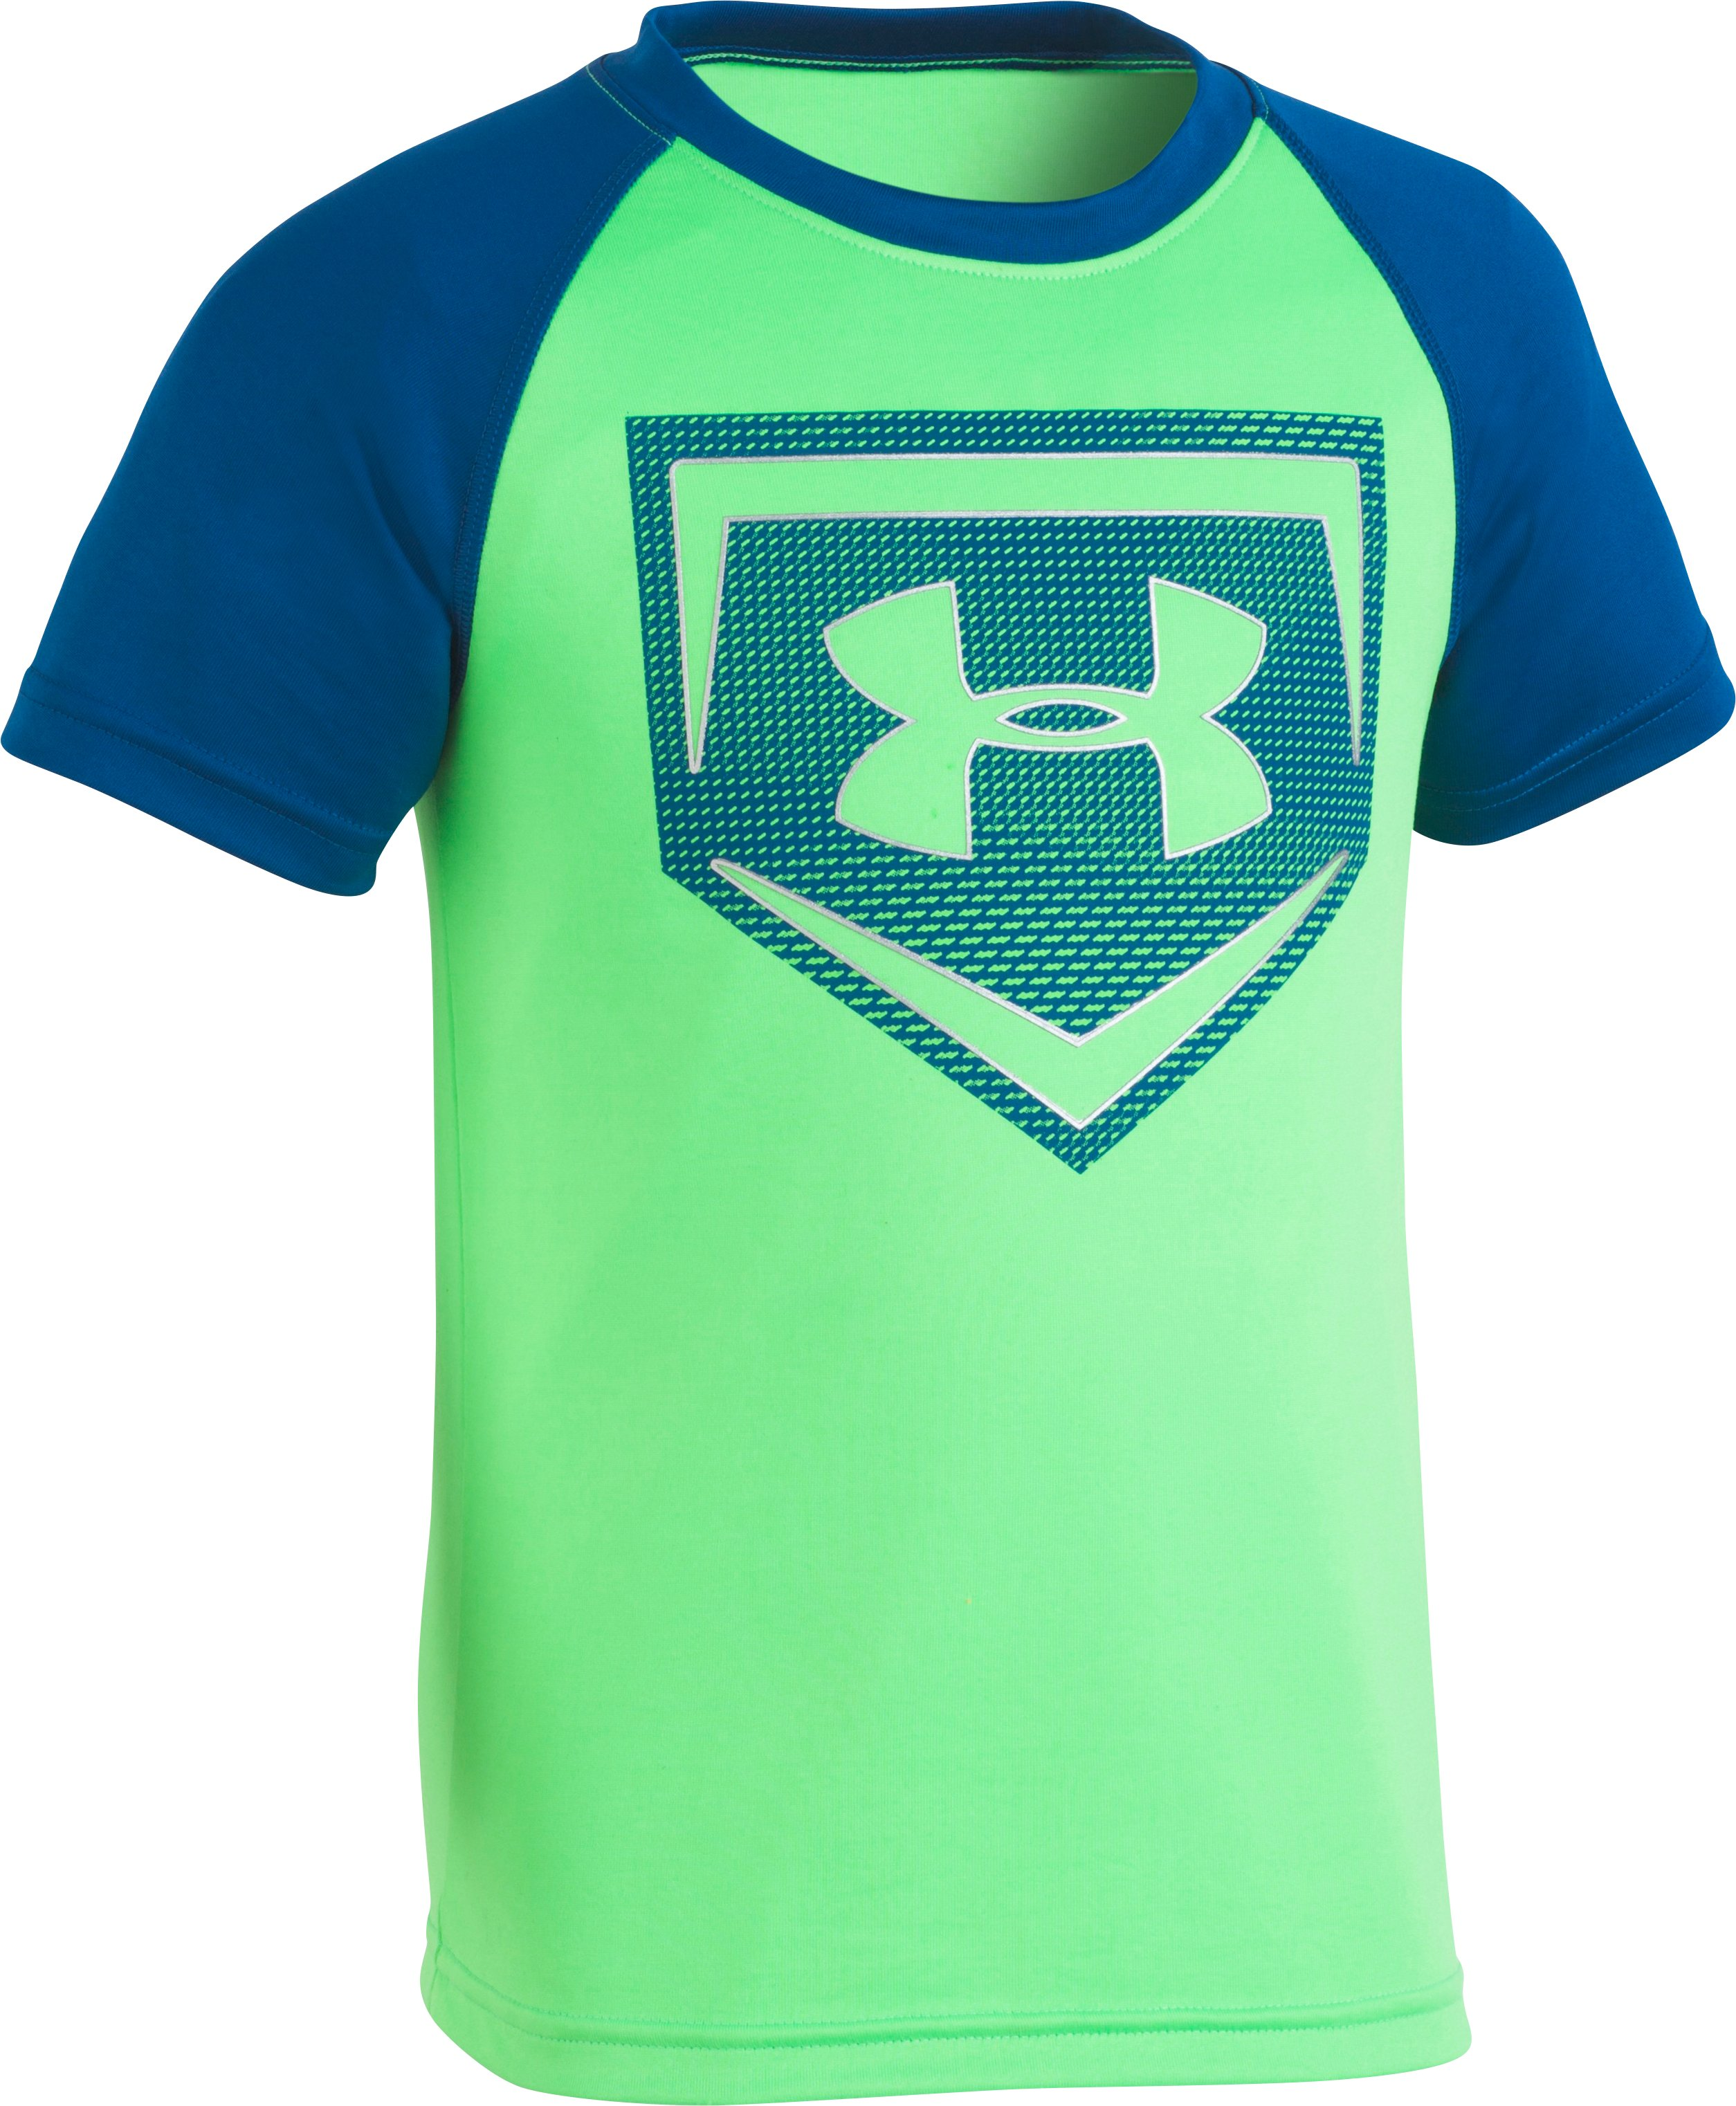 Boys' Pre-School UA Metallic Sync Homeplate T-Shirt, Arena Green, zoomed